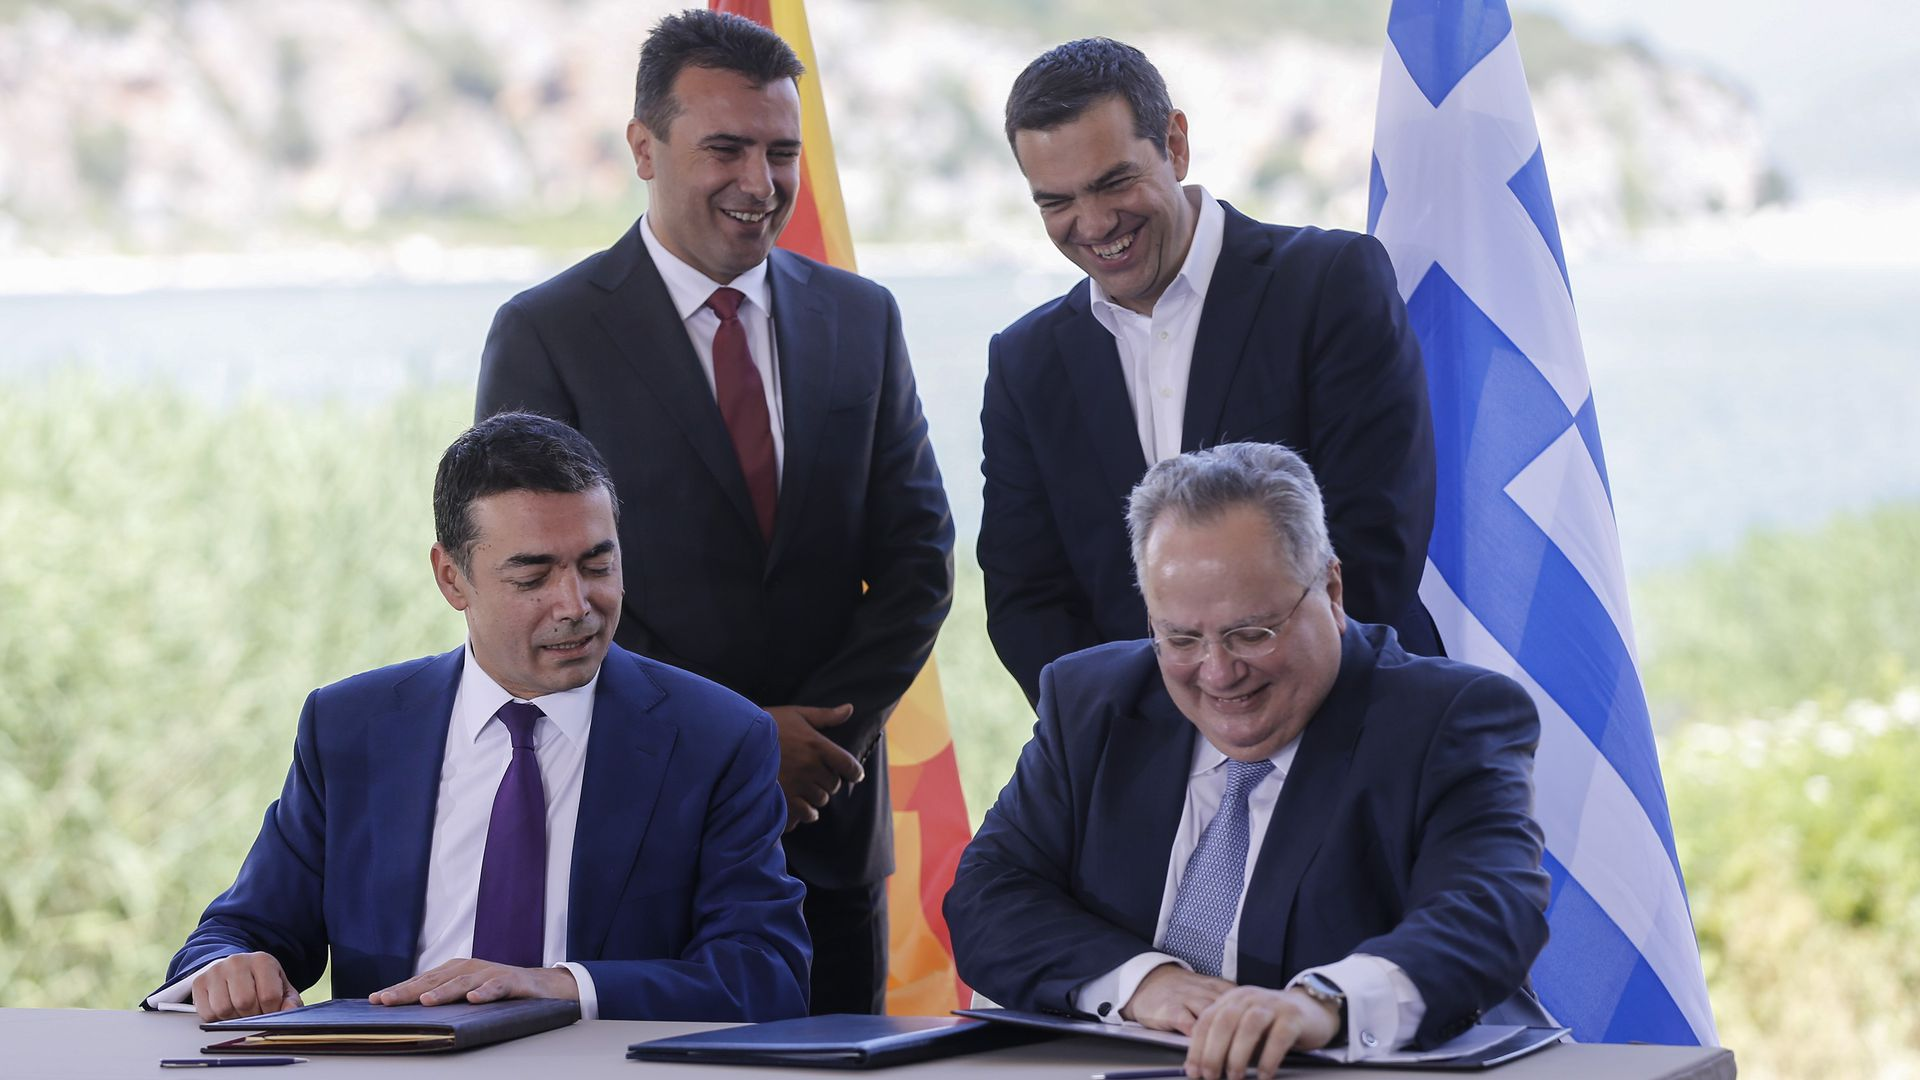 Greek Prime Minister Alexis Tsipras (back R) and Macedonian Prime Minister Zoran Zaev (back L) during the signing ceremony on Sunday.